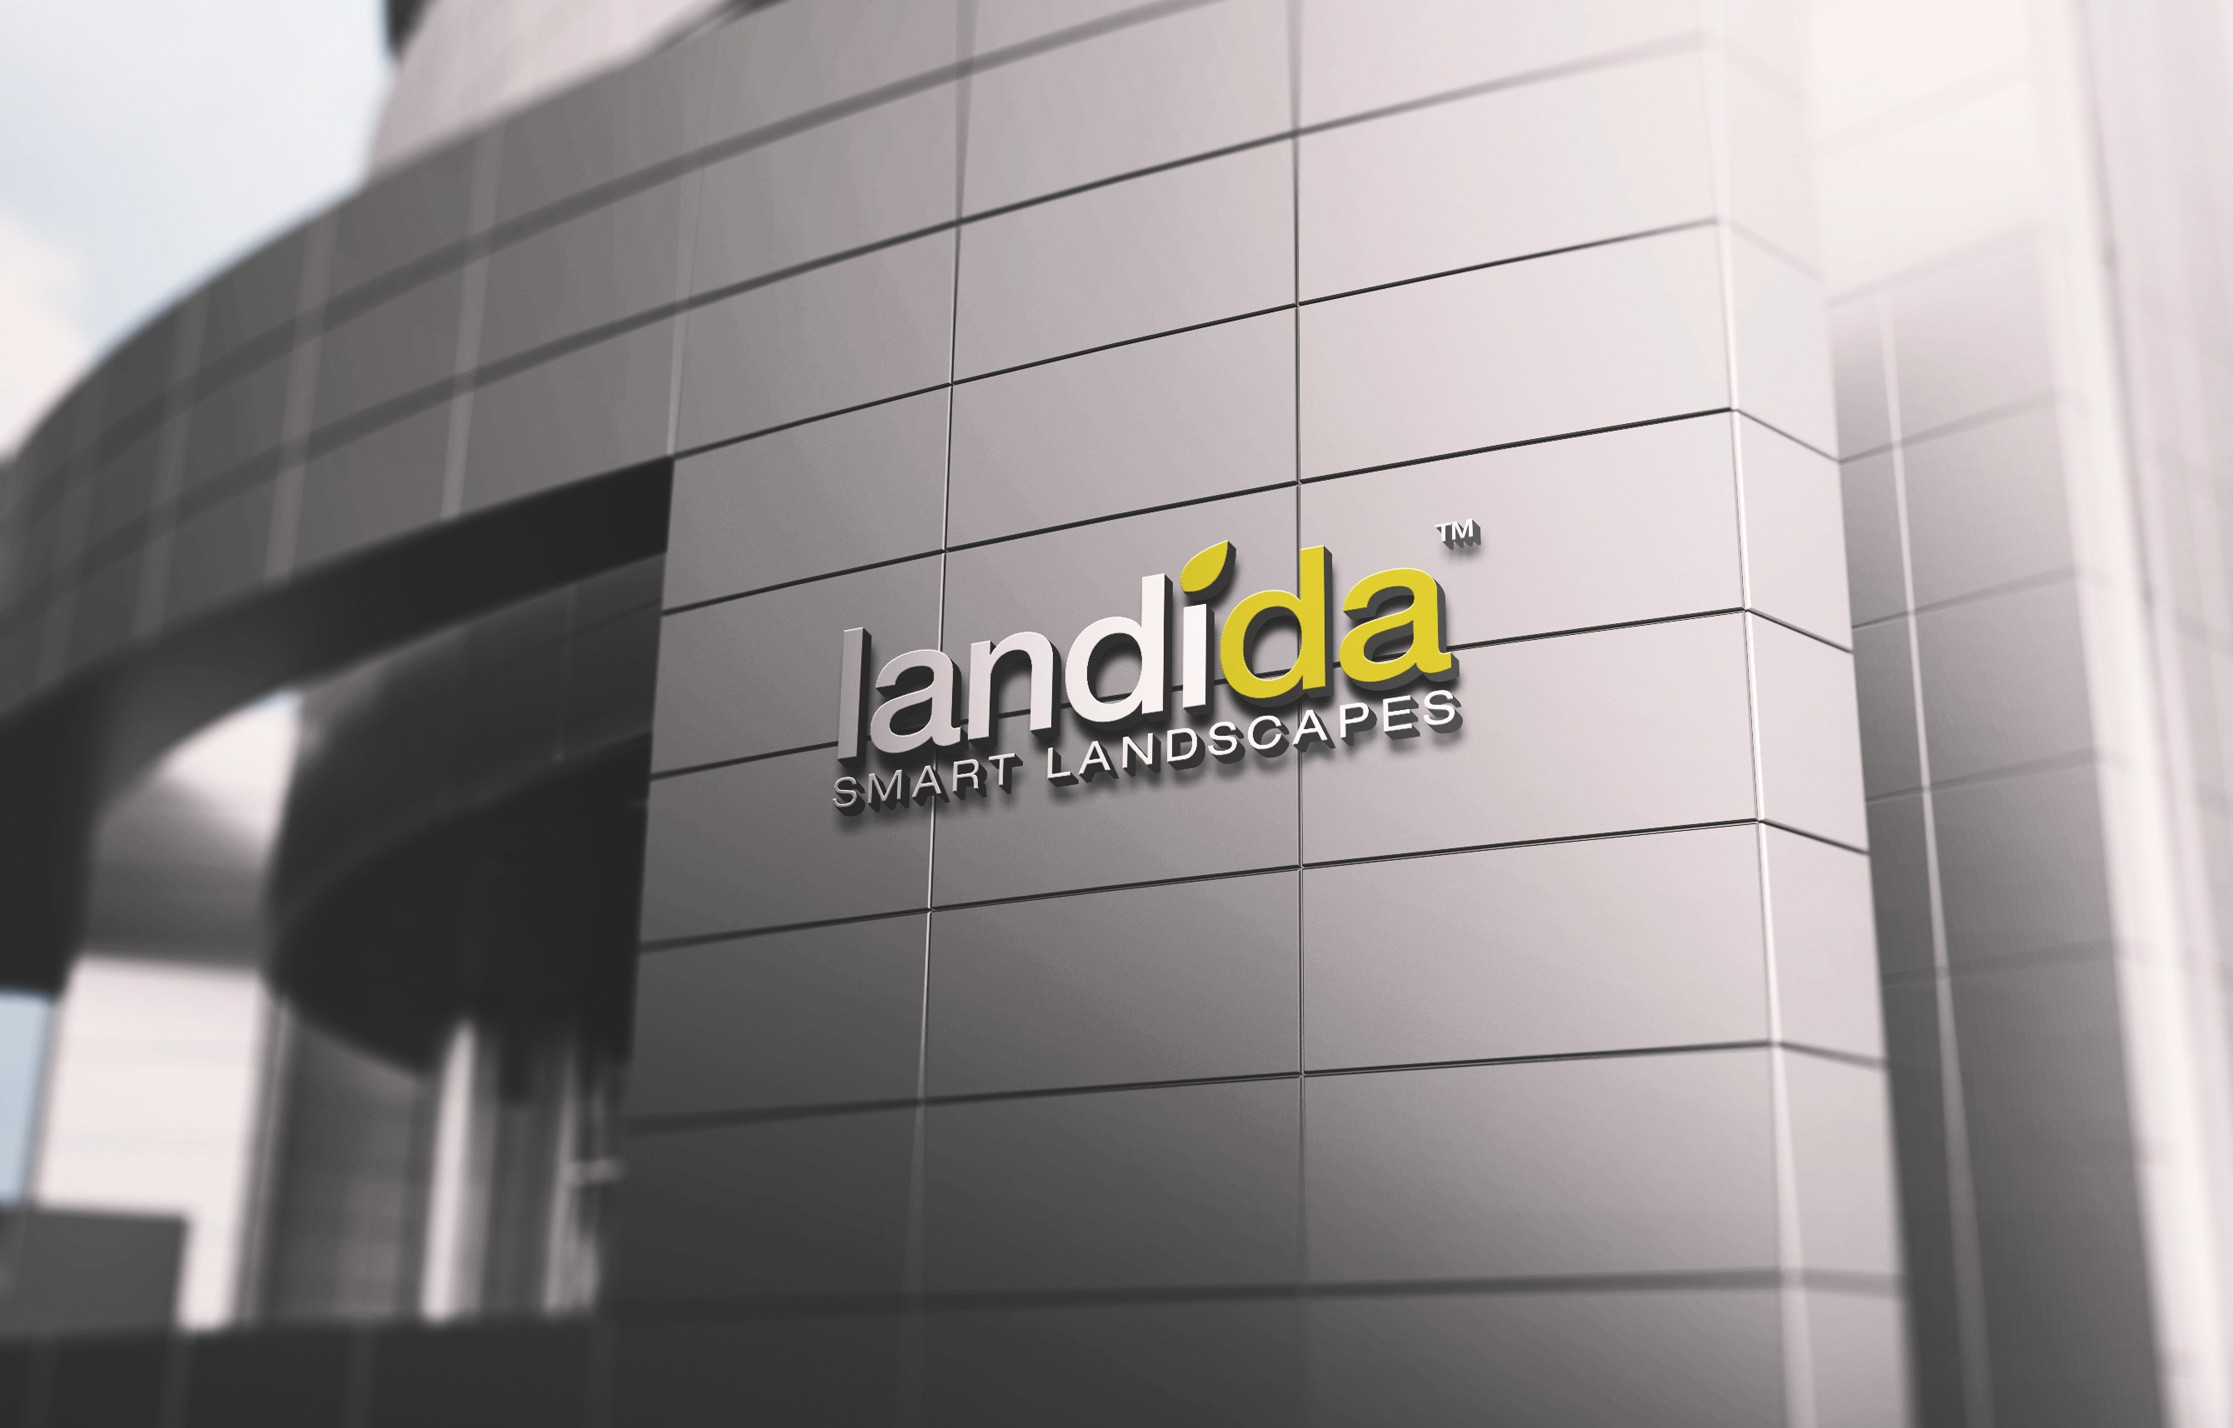 Landida™ Smart Landscapes | Get Grass-free at landida.com